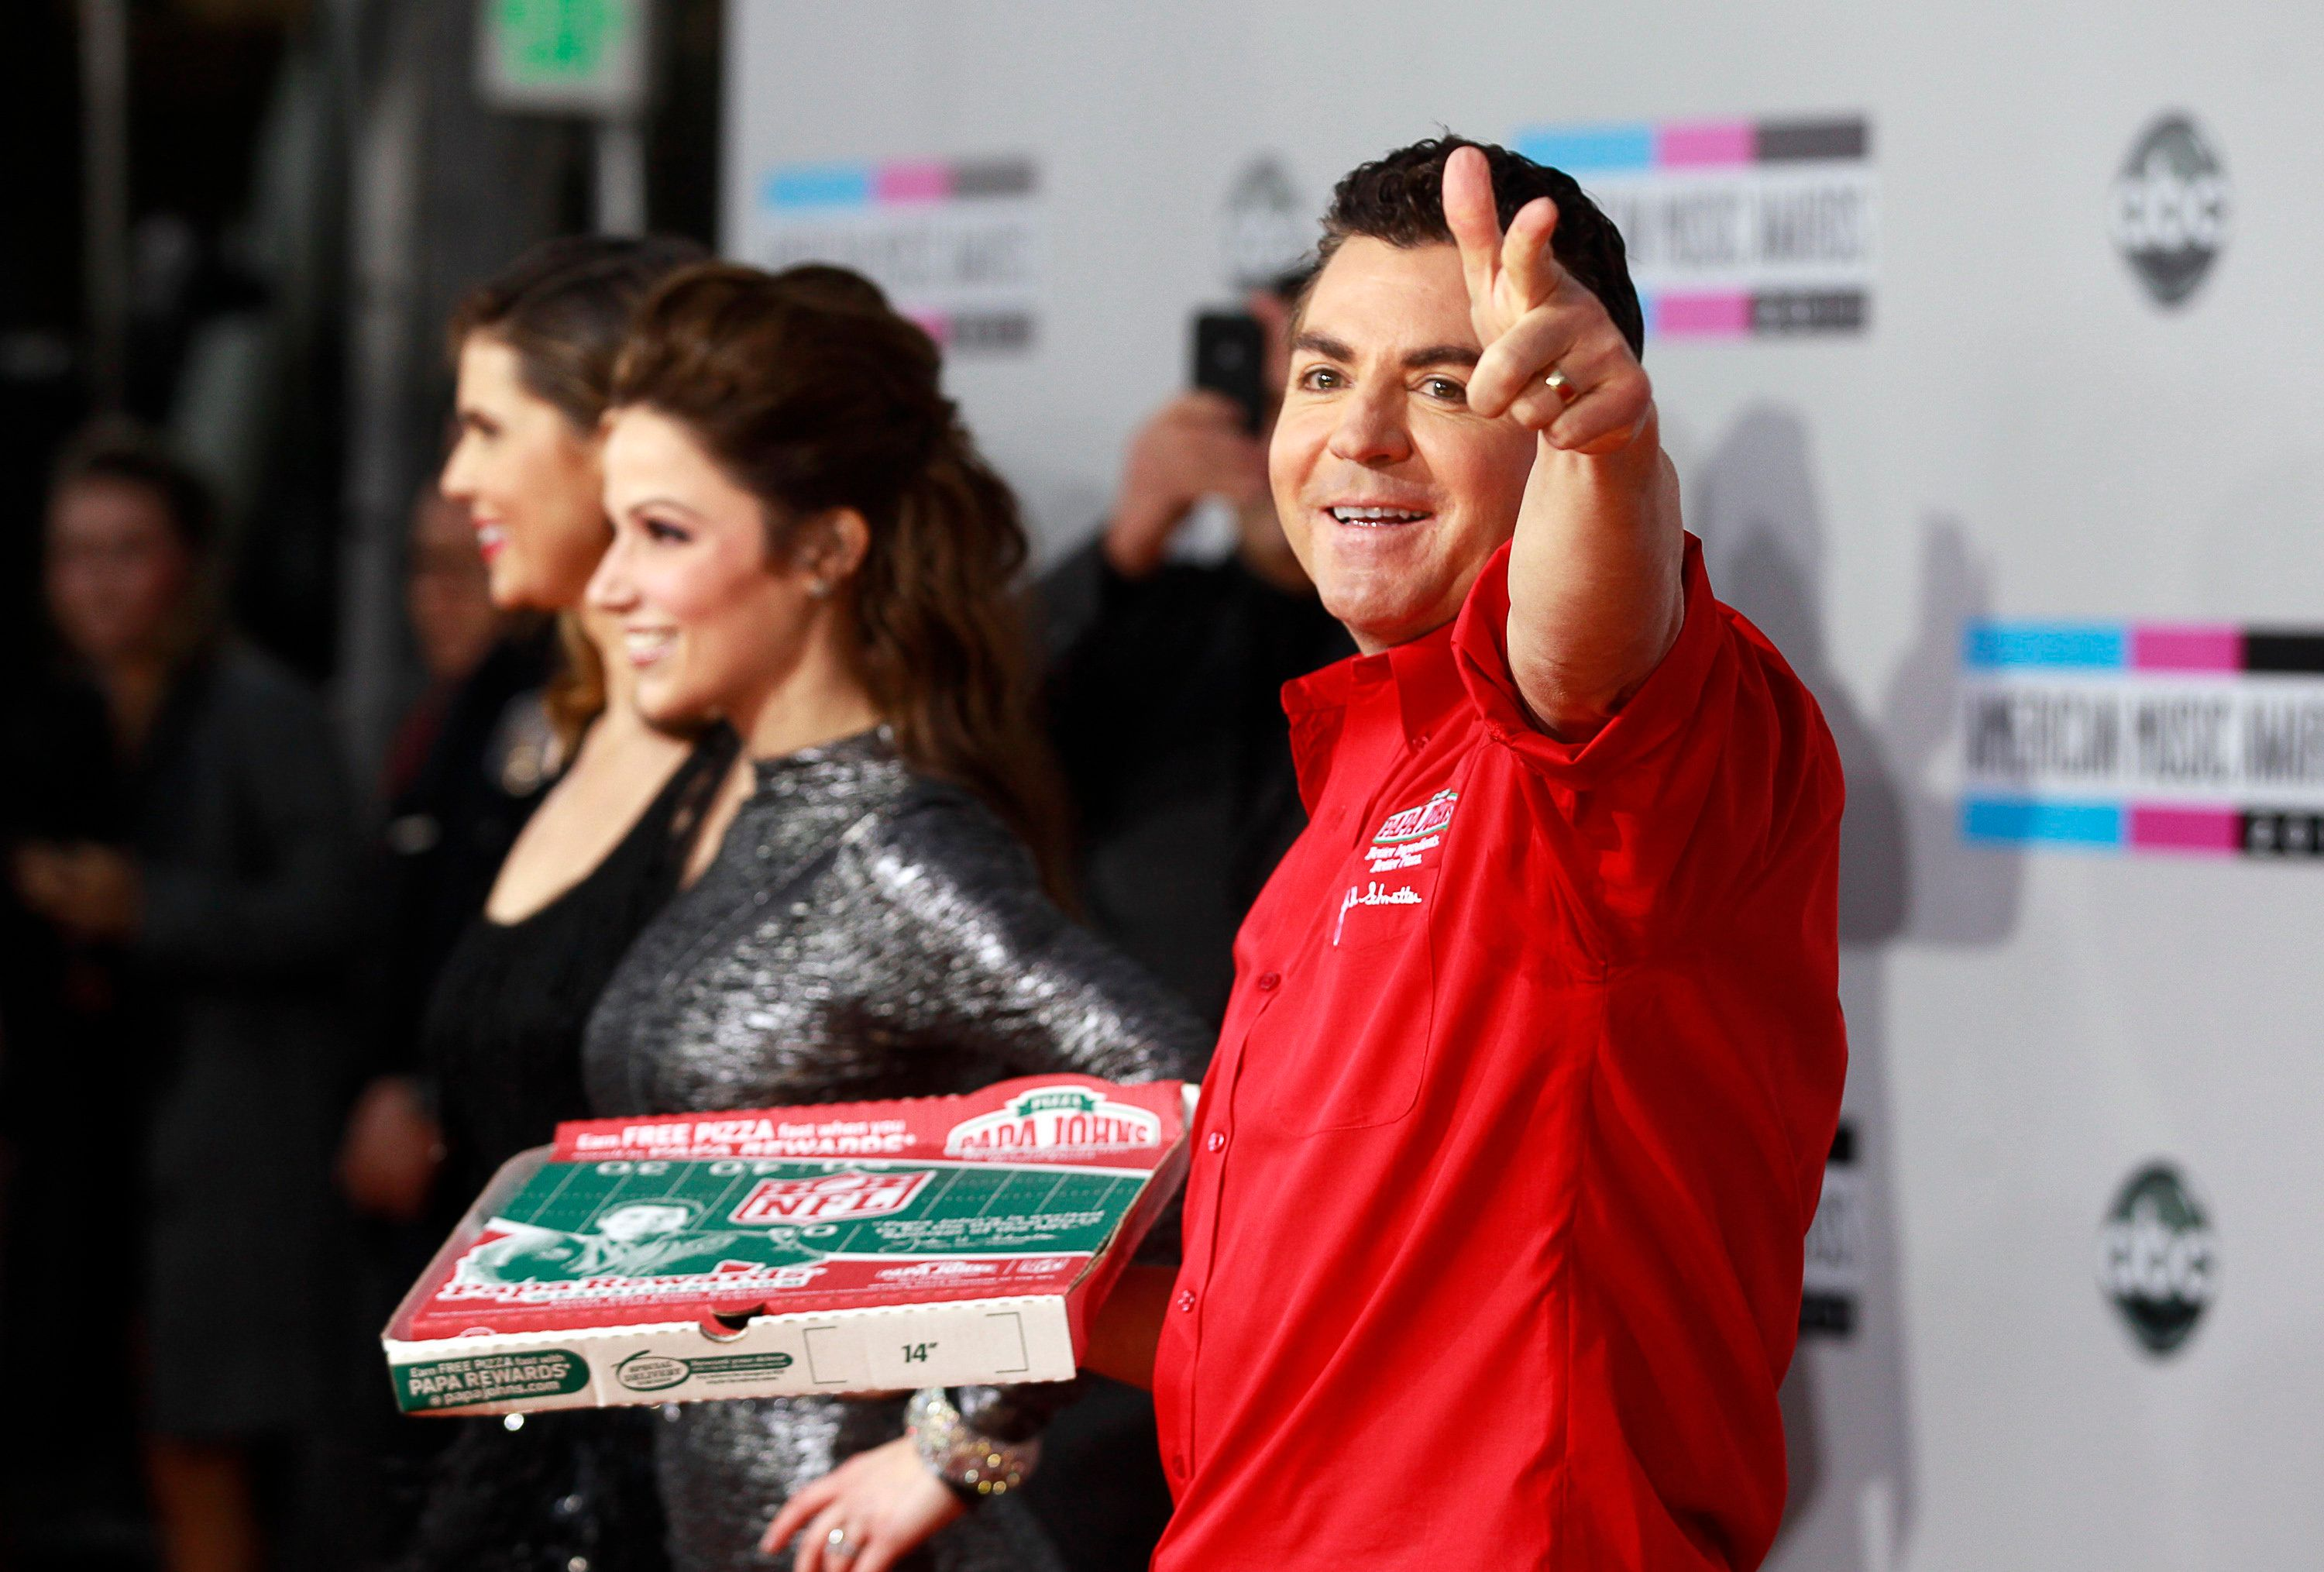 Papa John's Founder Quits After NFL Remarks